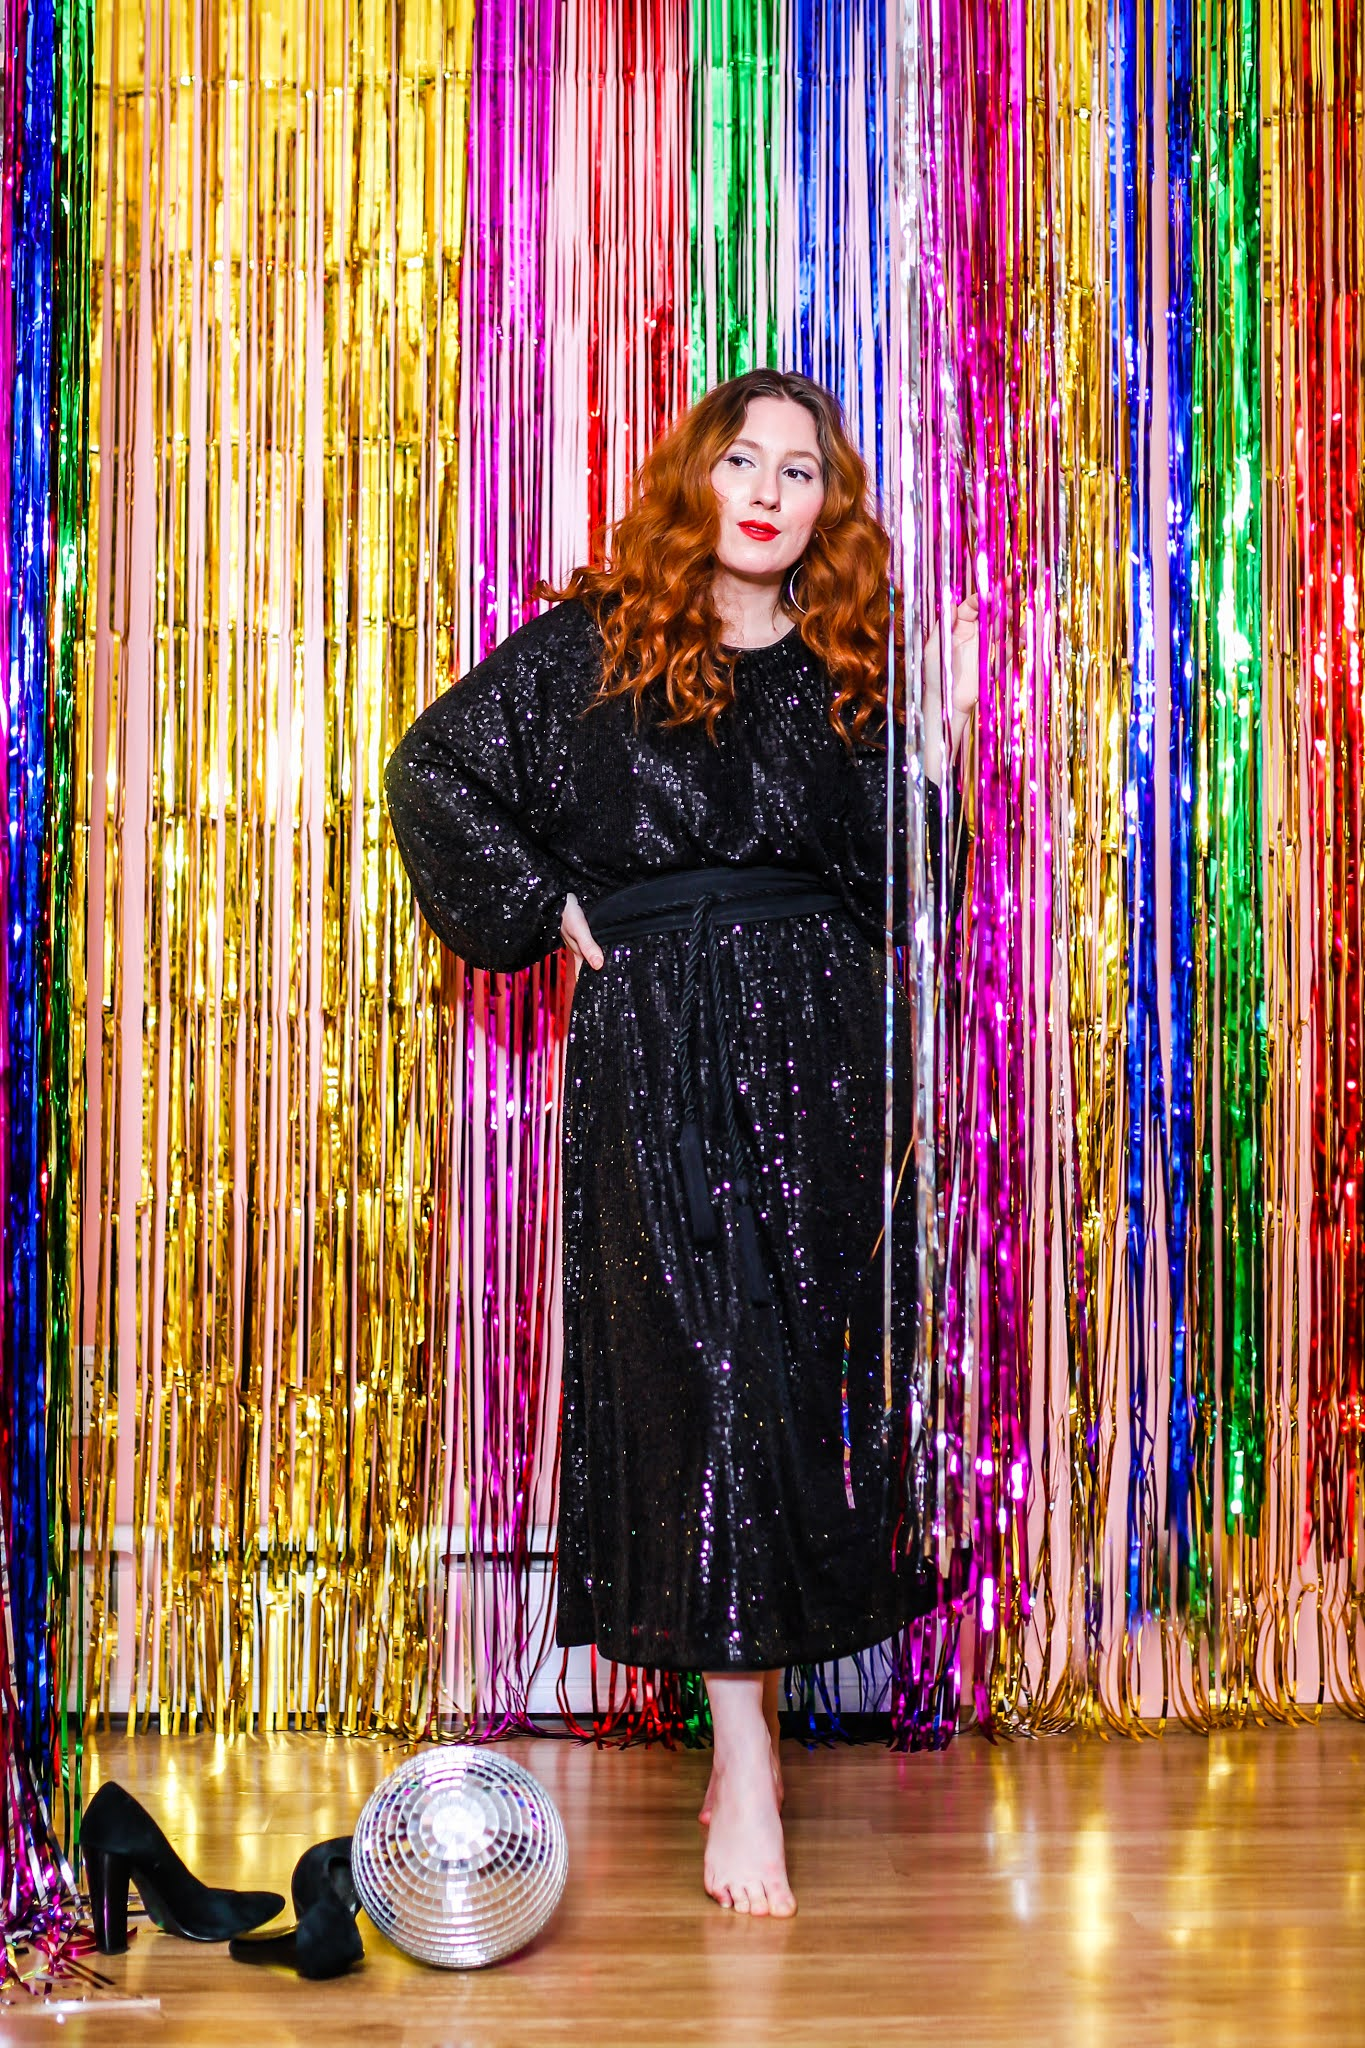 sequin dresses, sustainable sequin dress, h&m holiday 2020 collection , holiday outfits for 2020, holiday party outfit ideas , holiday outfit ideas , glam budget friendly holiday outfit ideas , H&M conscious holiday collection , h&m sequins , h&m sequin dresses , H&M kids holiday outfits , holiday outfit Inspo , sparkling holiday outfits , holiday outfit inspo , holiday party outfit inspo, black sequin dress, black sequin maxi dress, sequin dresses under $50, sequin dresses under $100 for the holidays